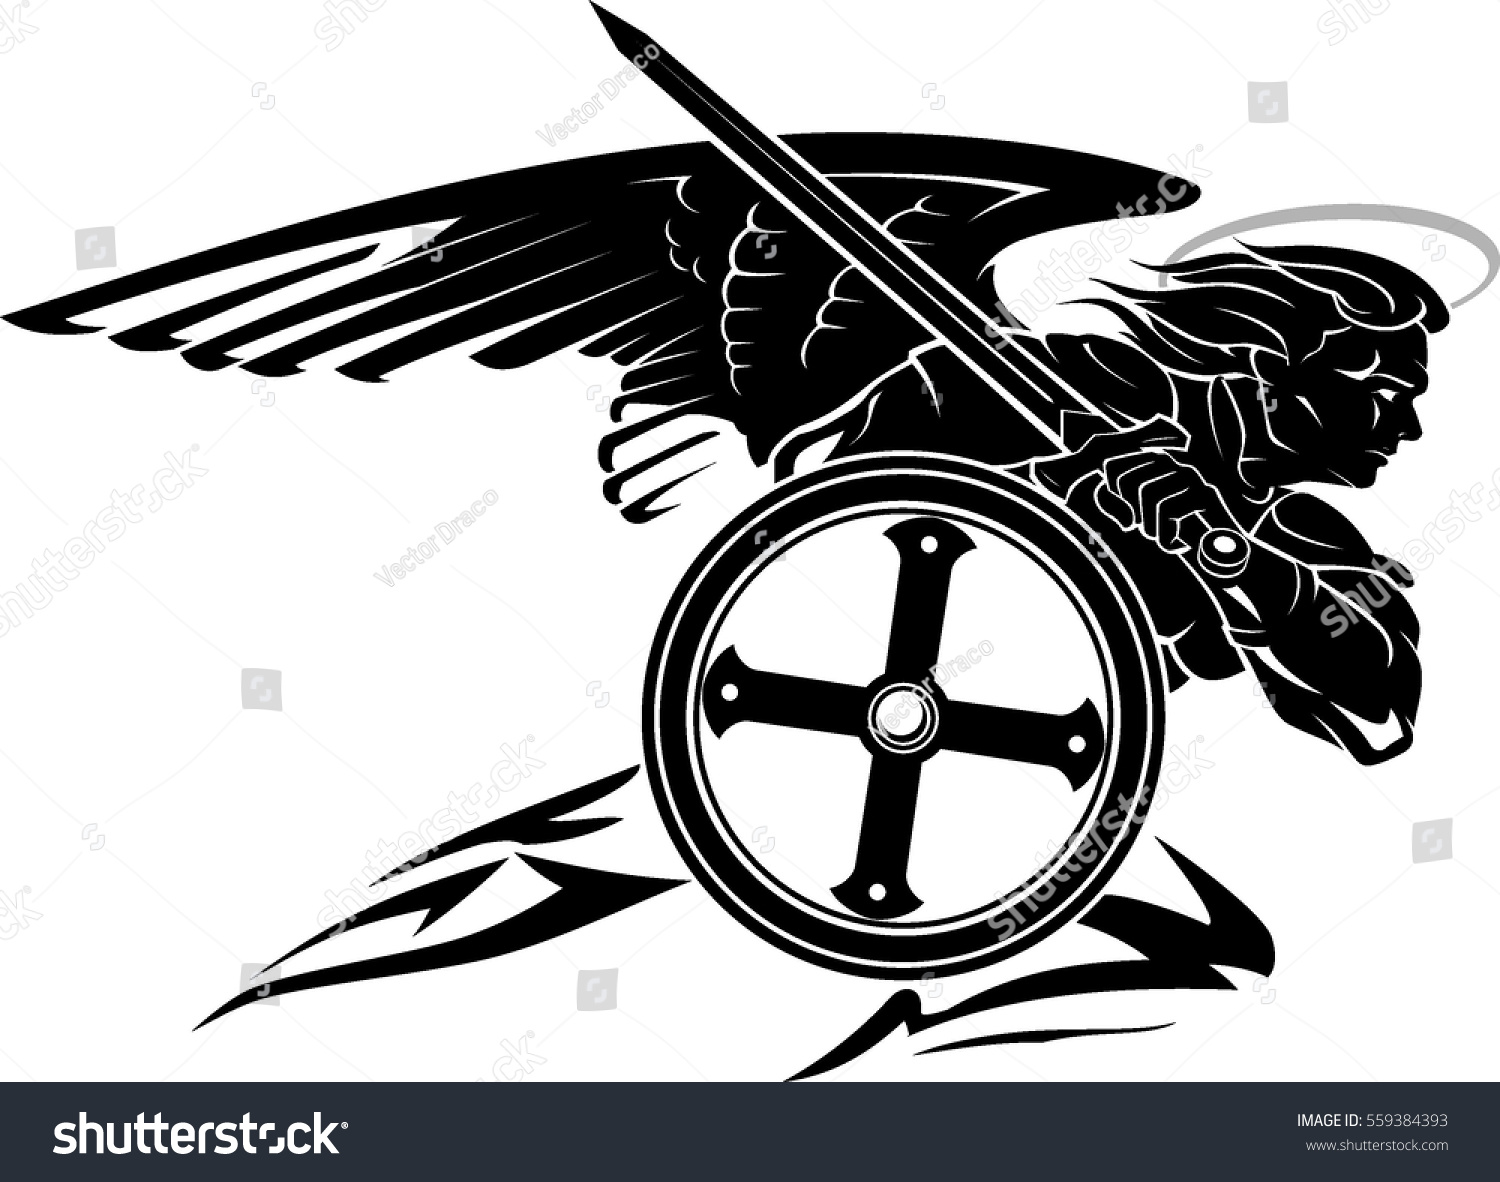 St michael archangel charging pose round stock vector 559384393 st michael archangel charging pose with round shield biocorpaavc Images